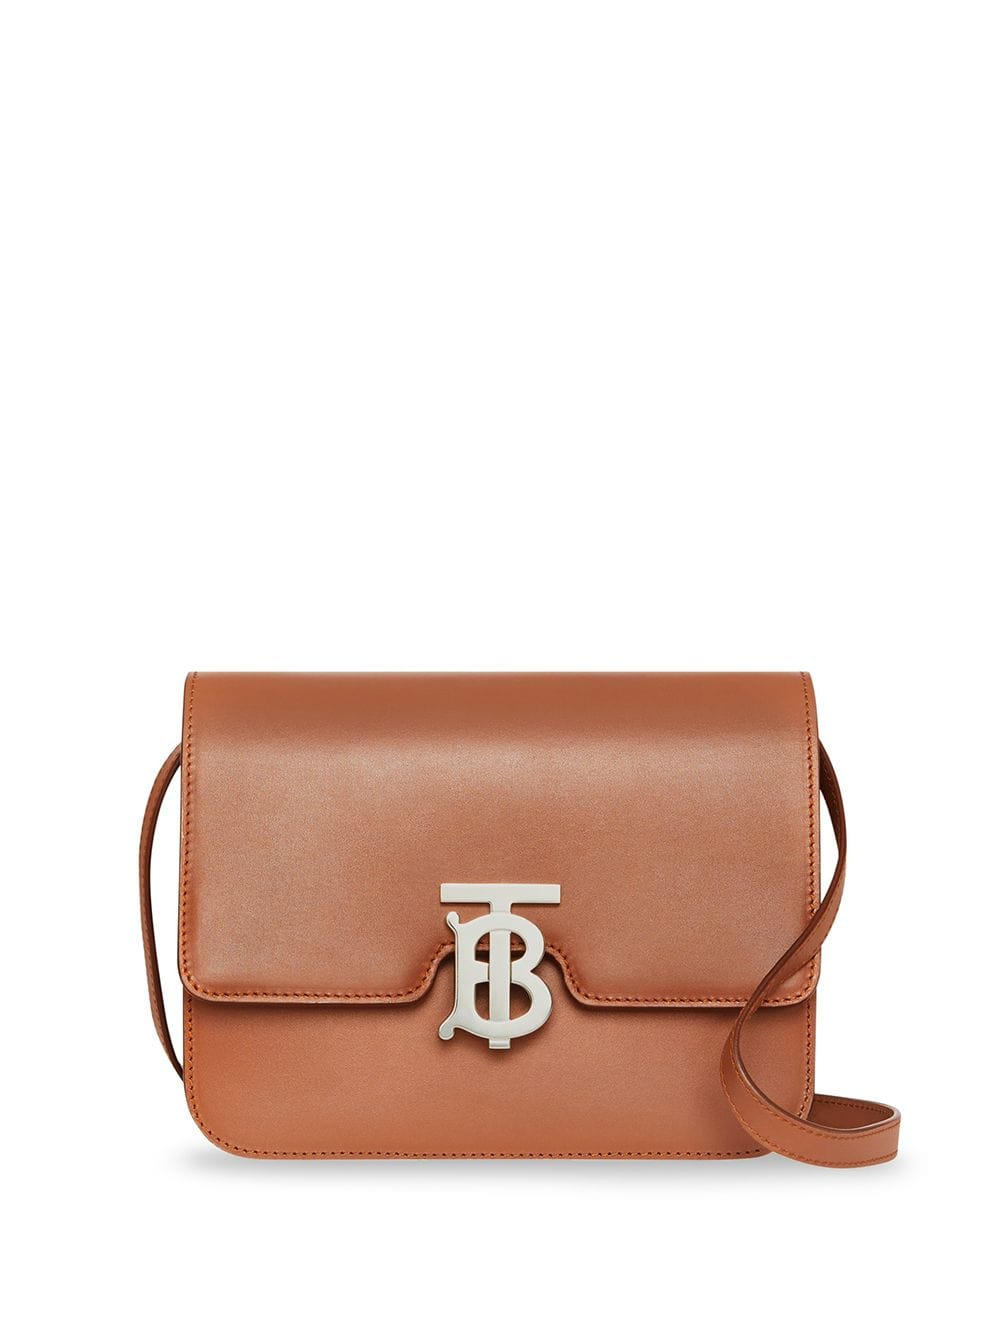 Small Leather TB Bag by Burberry, available on farfetch.com for $2006 Irina Shayk Bags Exact Product